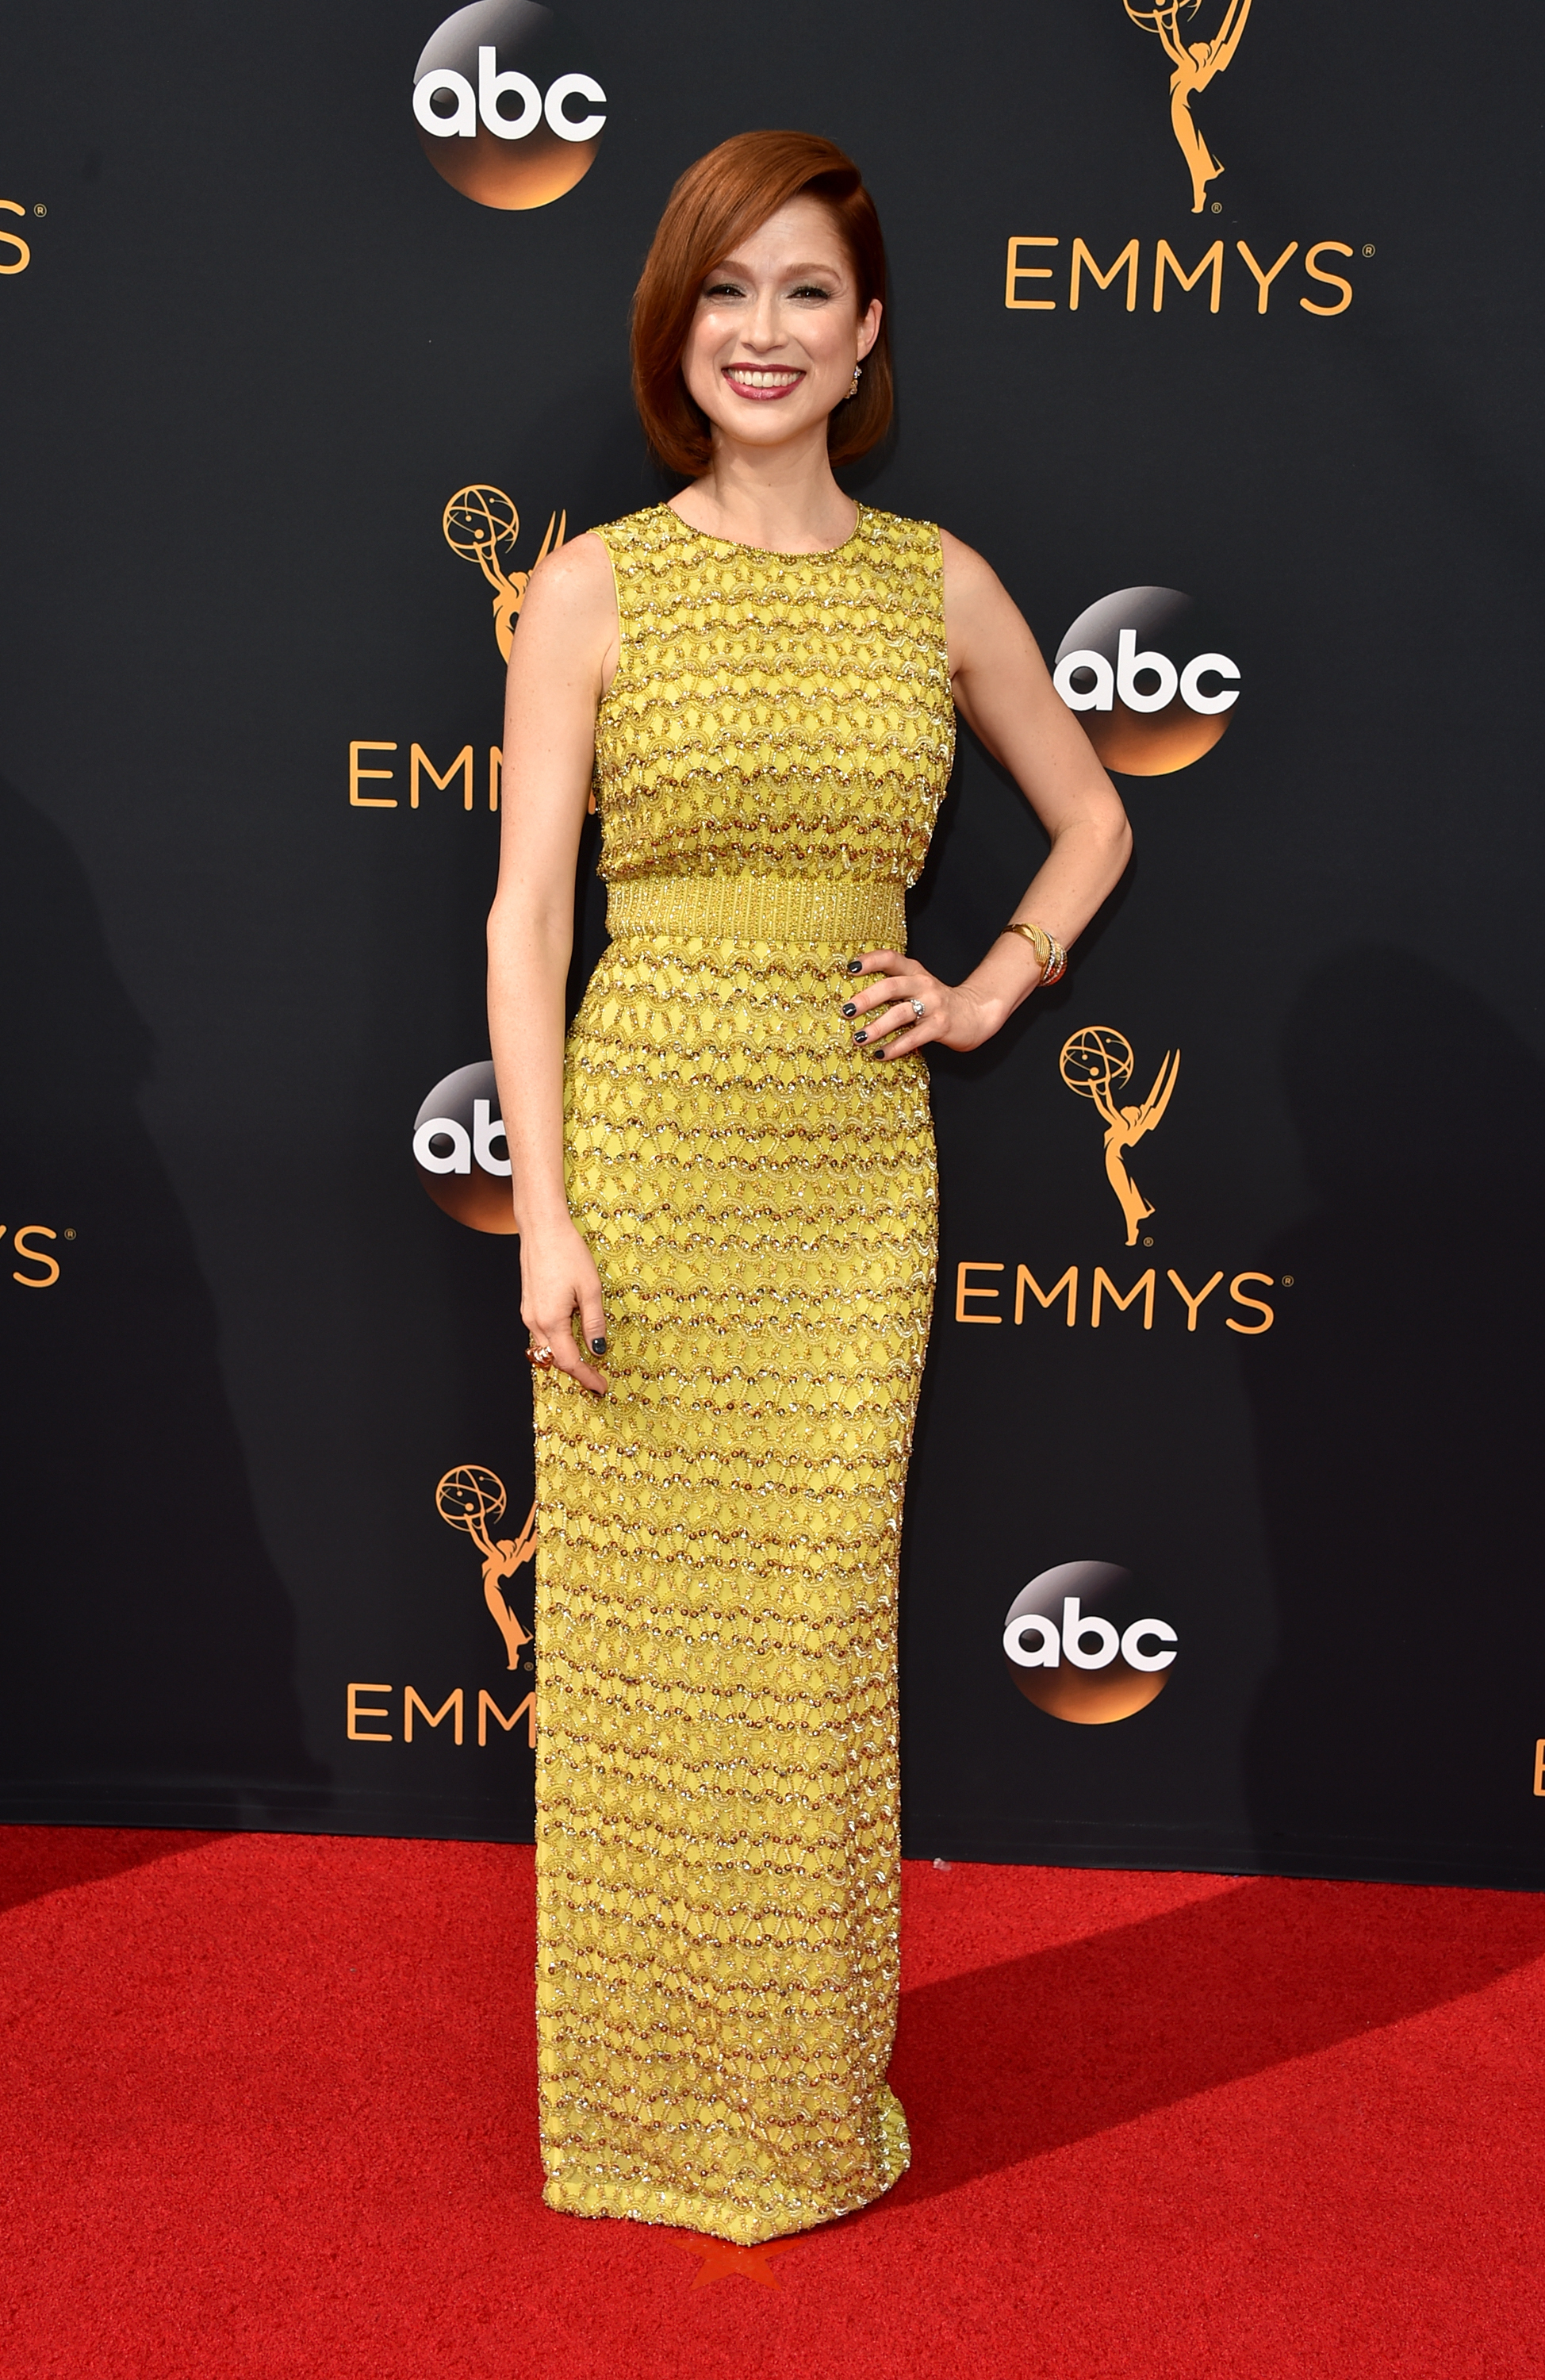 Ellie Kemper arrives at the 68th Annual Primetime Emmy Awards at Microsoft Theater on Sept. 18, 2016 in Los Angeles.